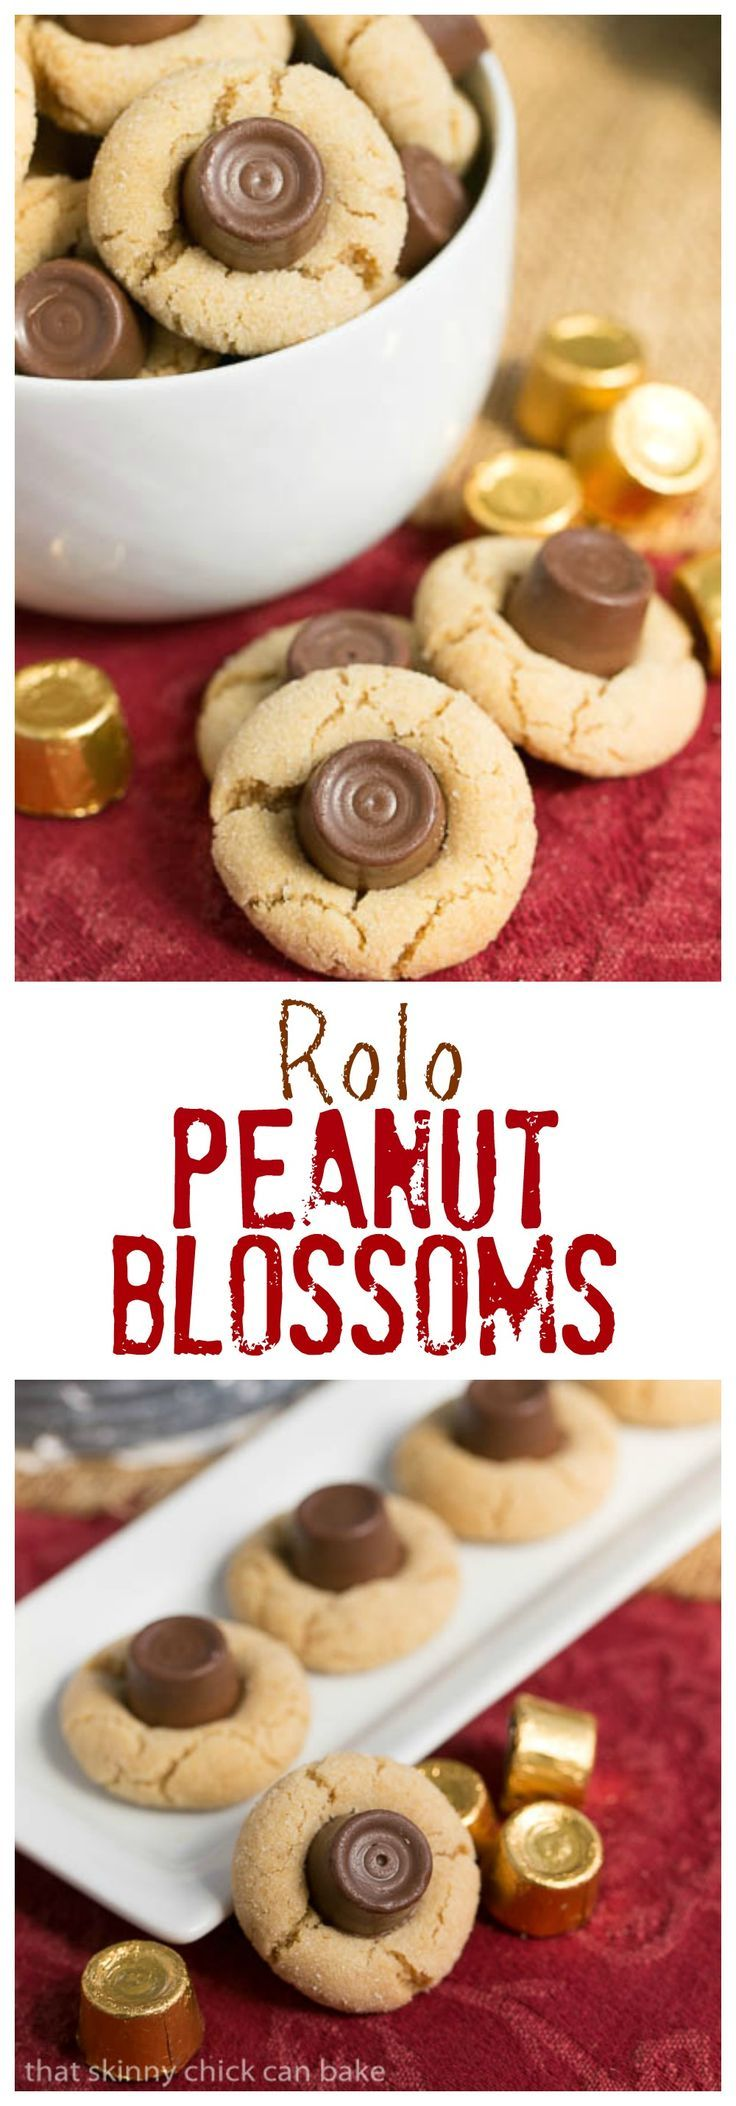 Rolo Peanut Blossoms   Sugar coated peanut butter cookies topped with a chocolate caramel Rolo @lizzydo